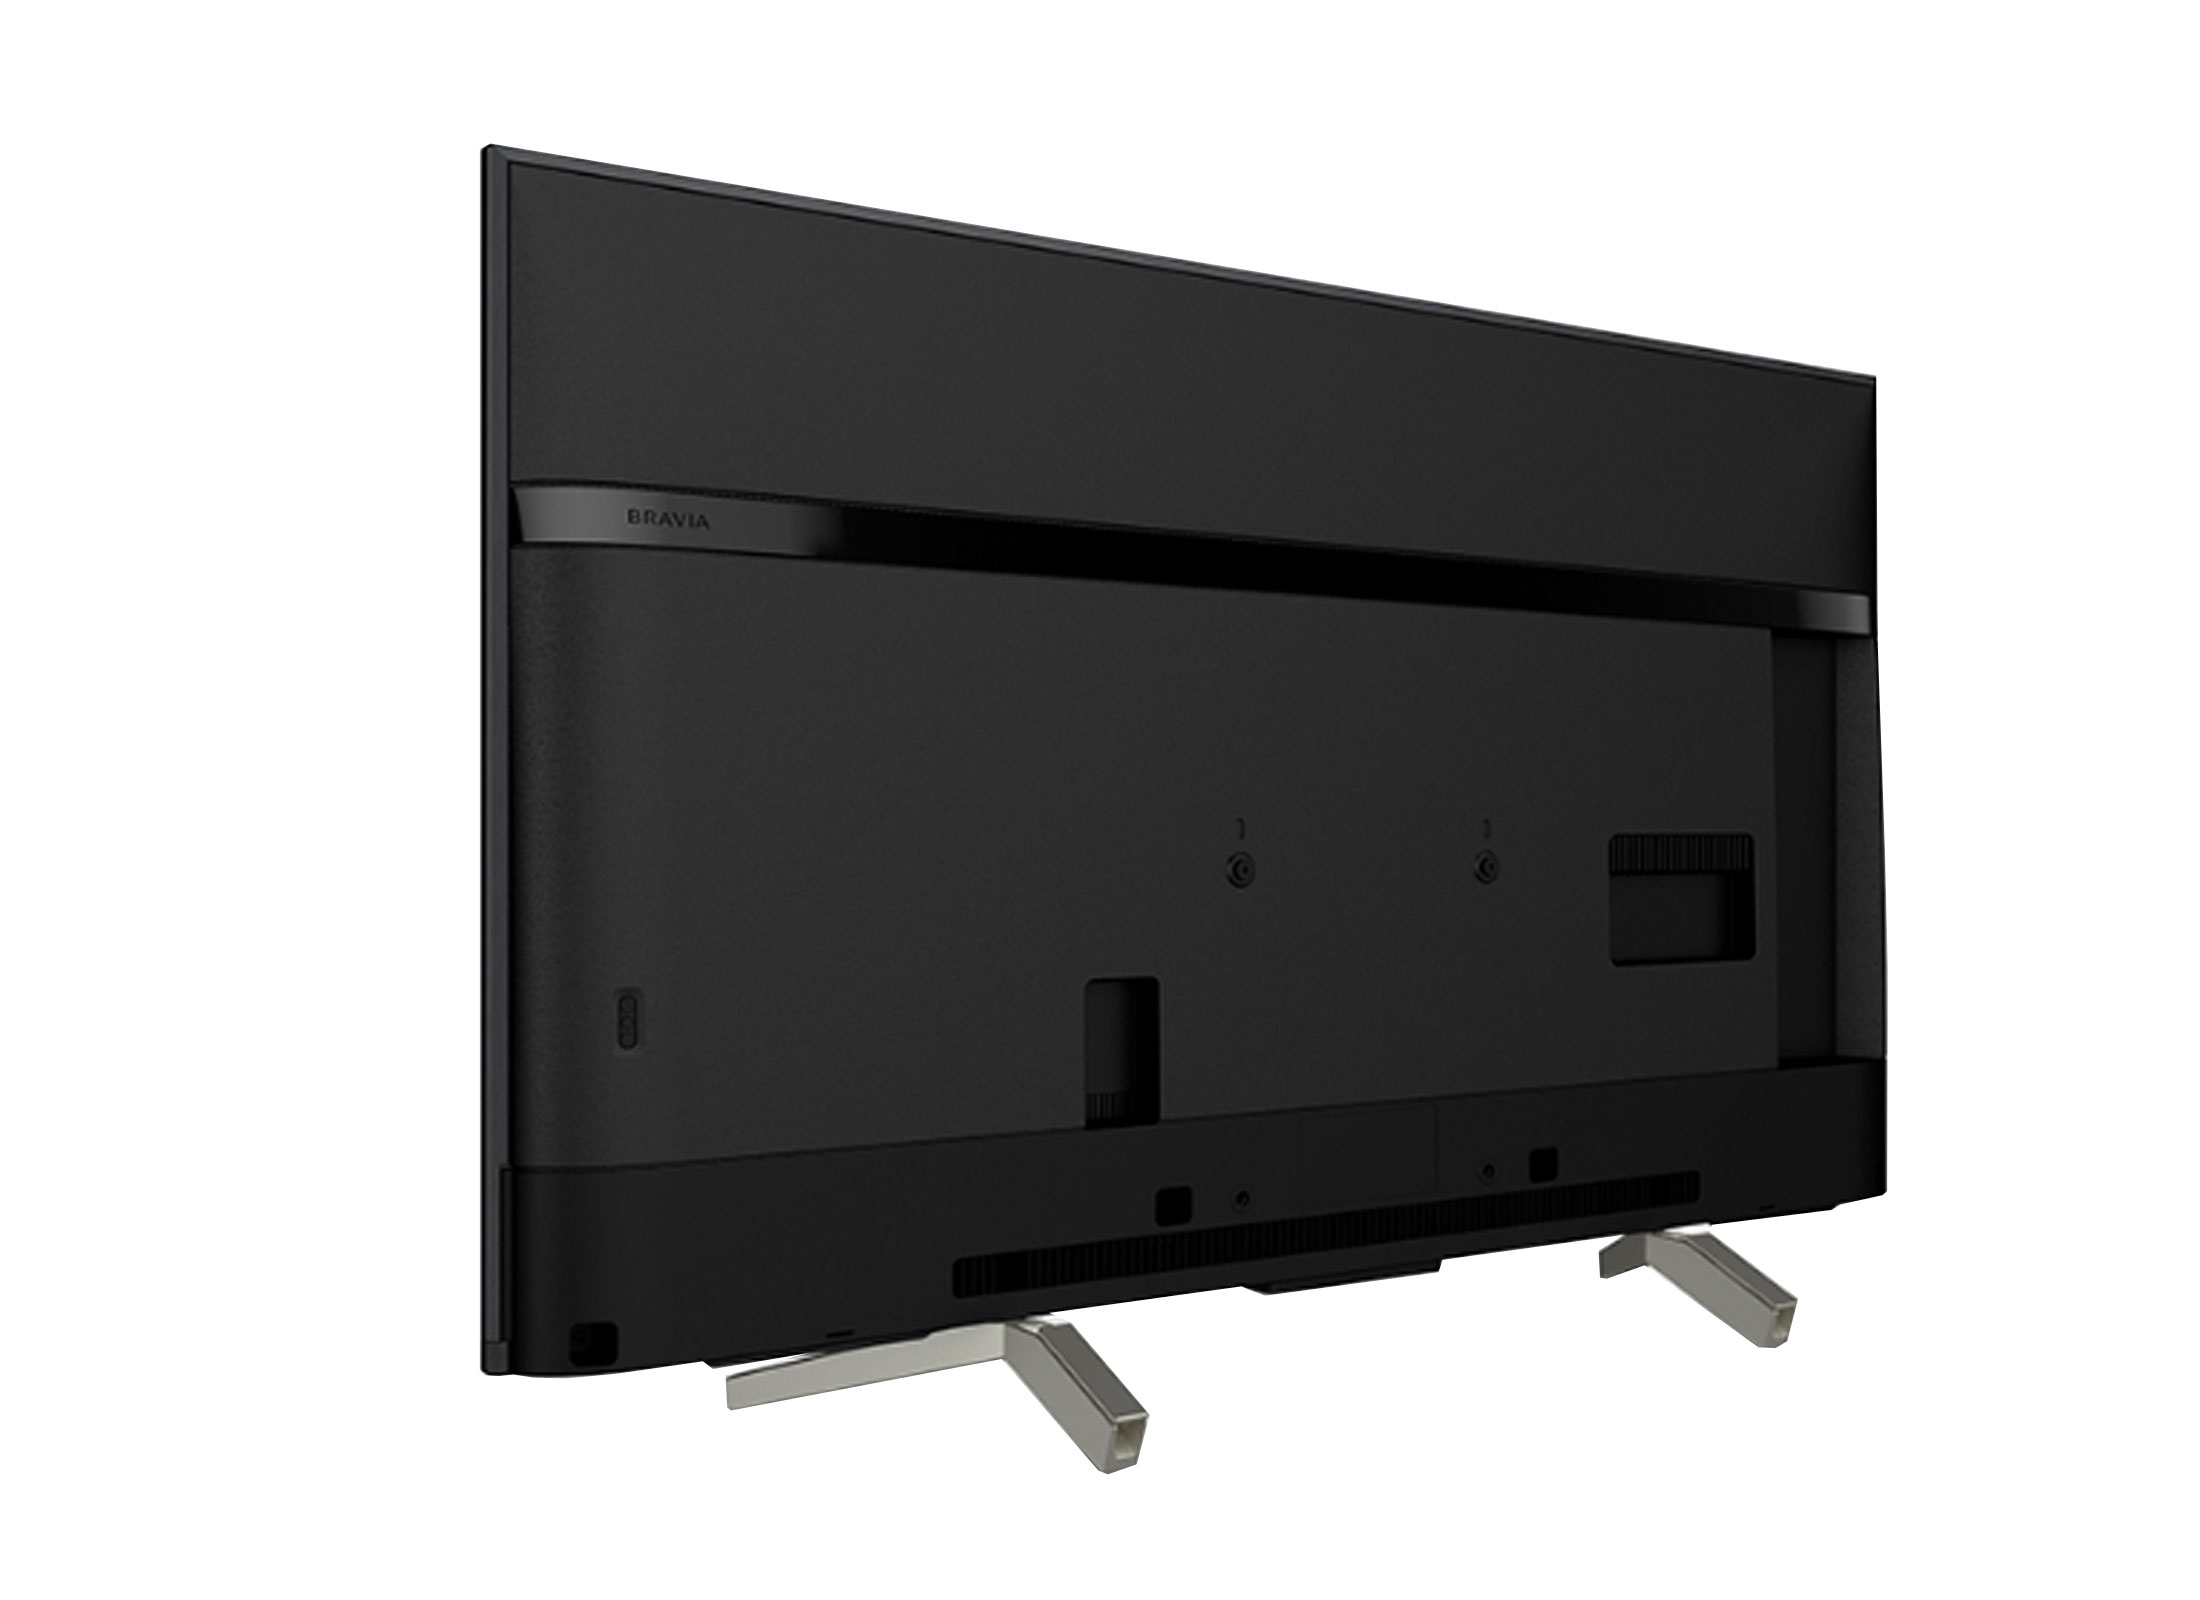 Sony Kundencenter Sony Bravia 4k Fw 75bz35f Lcd Display 75 16 9 24 7 620 Cd M² 4000 1 Wifi Vesa